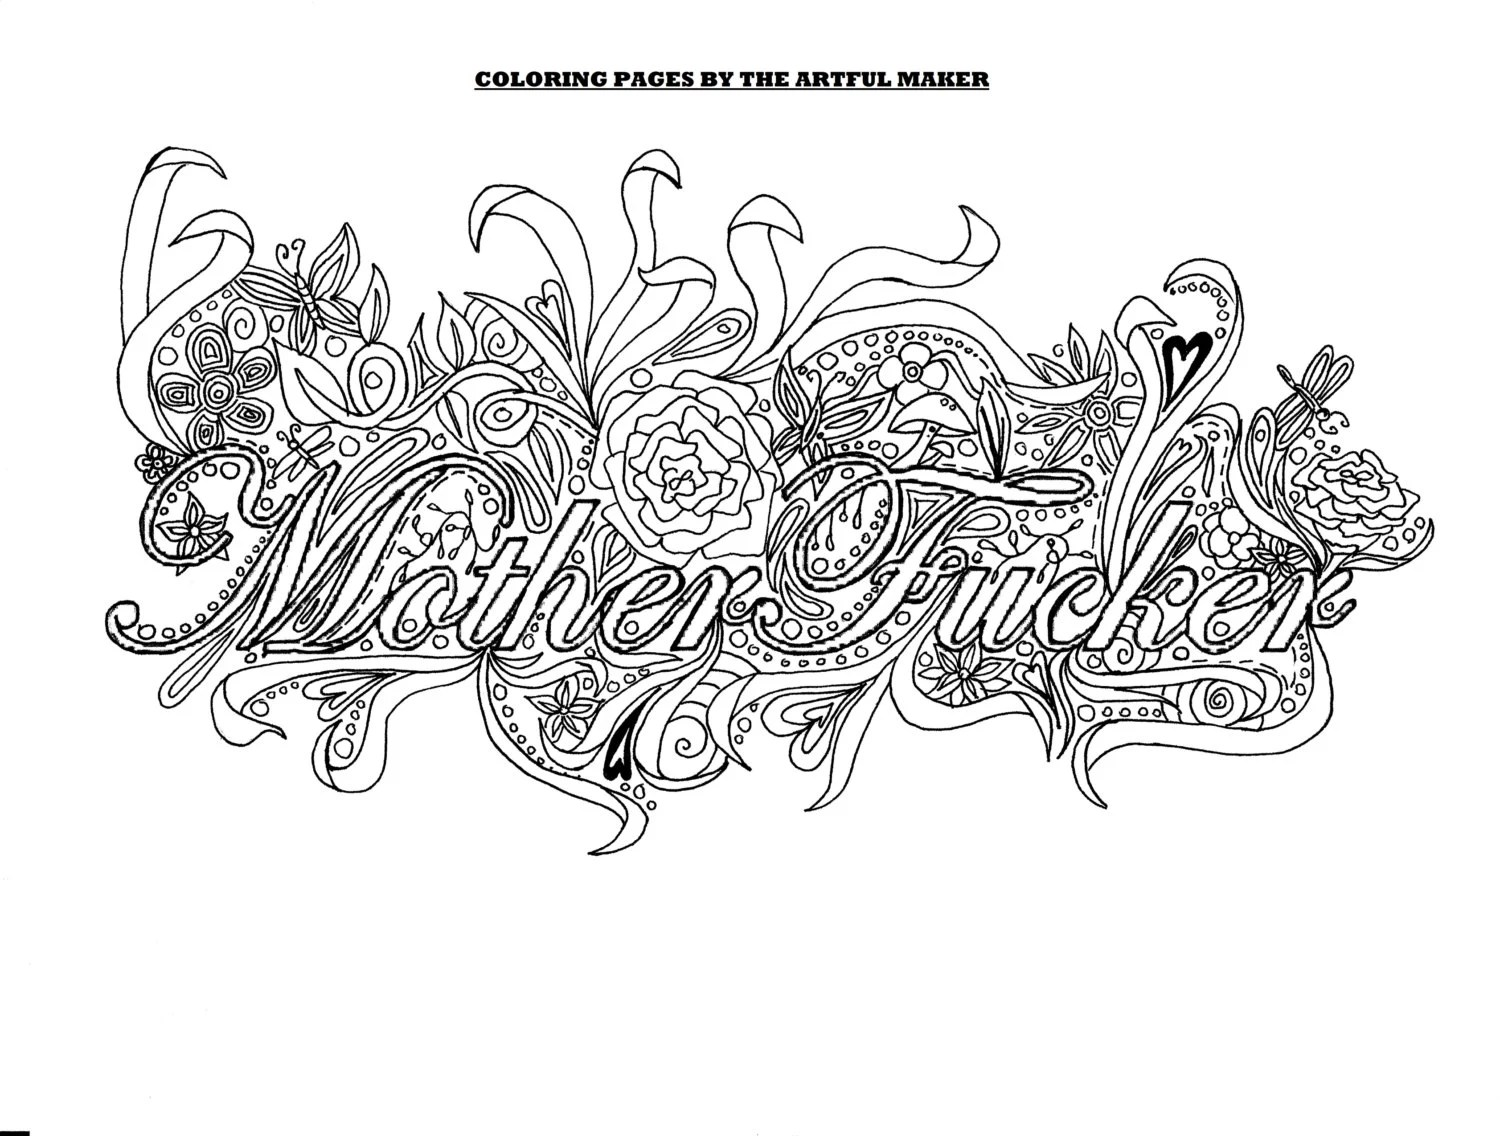 Motherfucker Adult Coloring Page By The Artful Maker